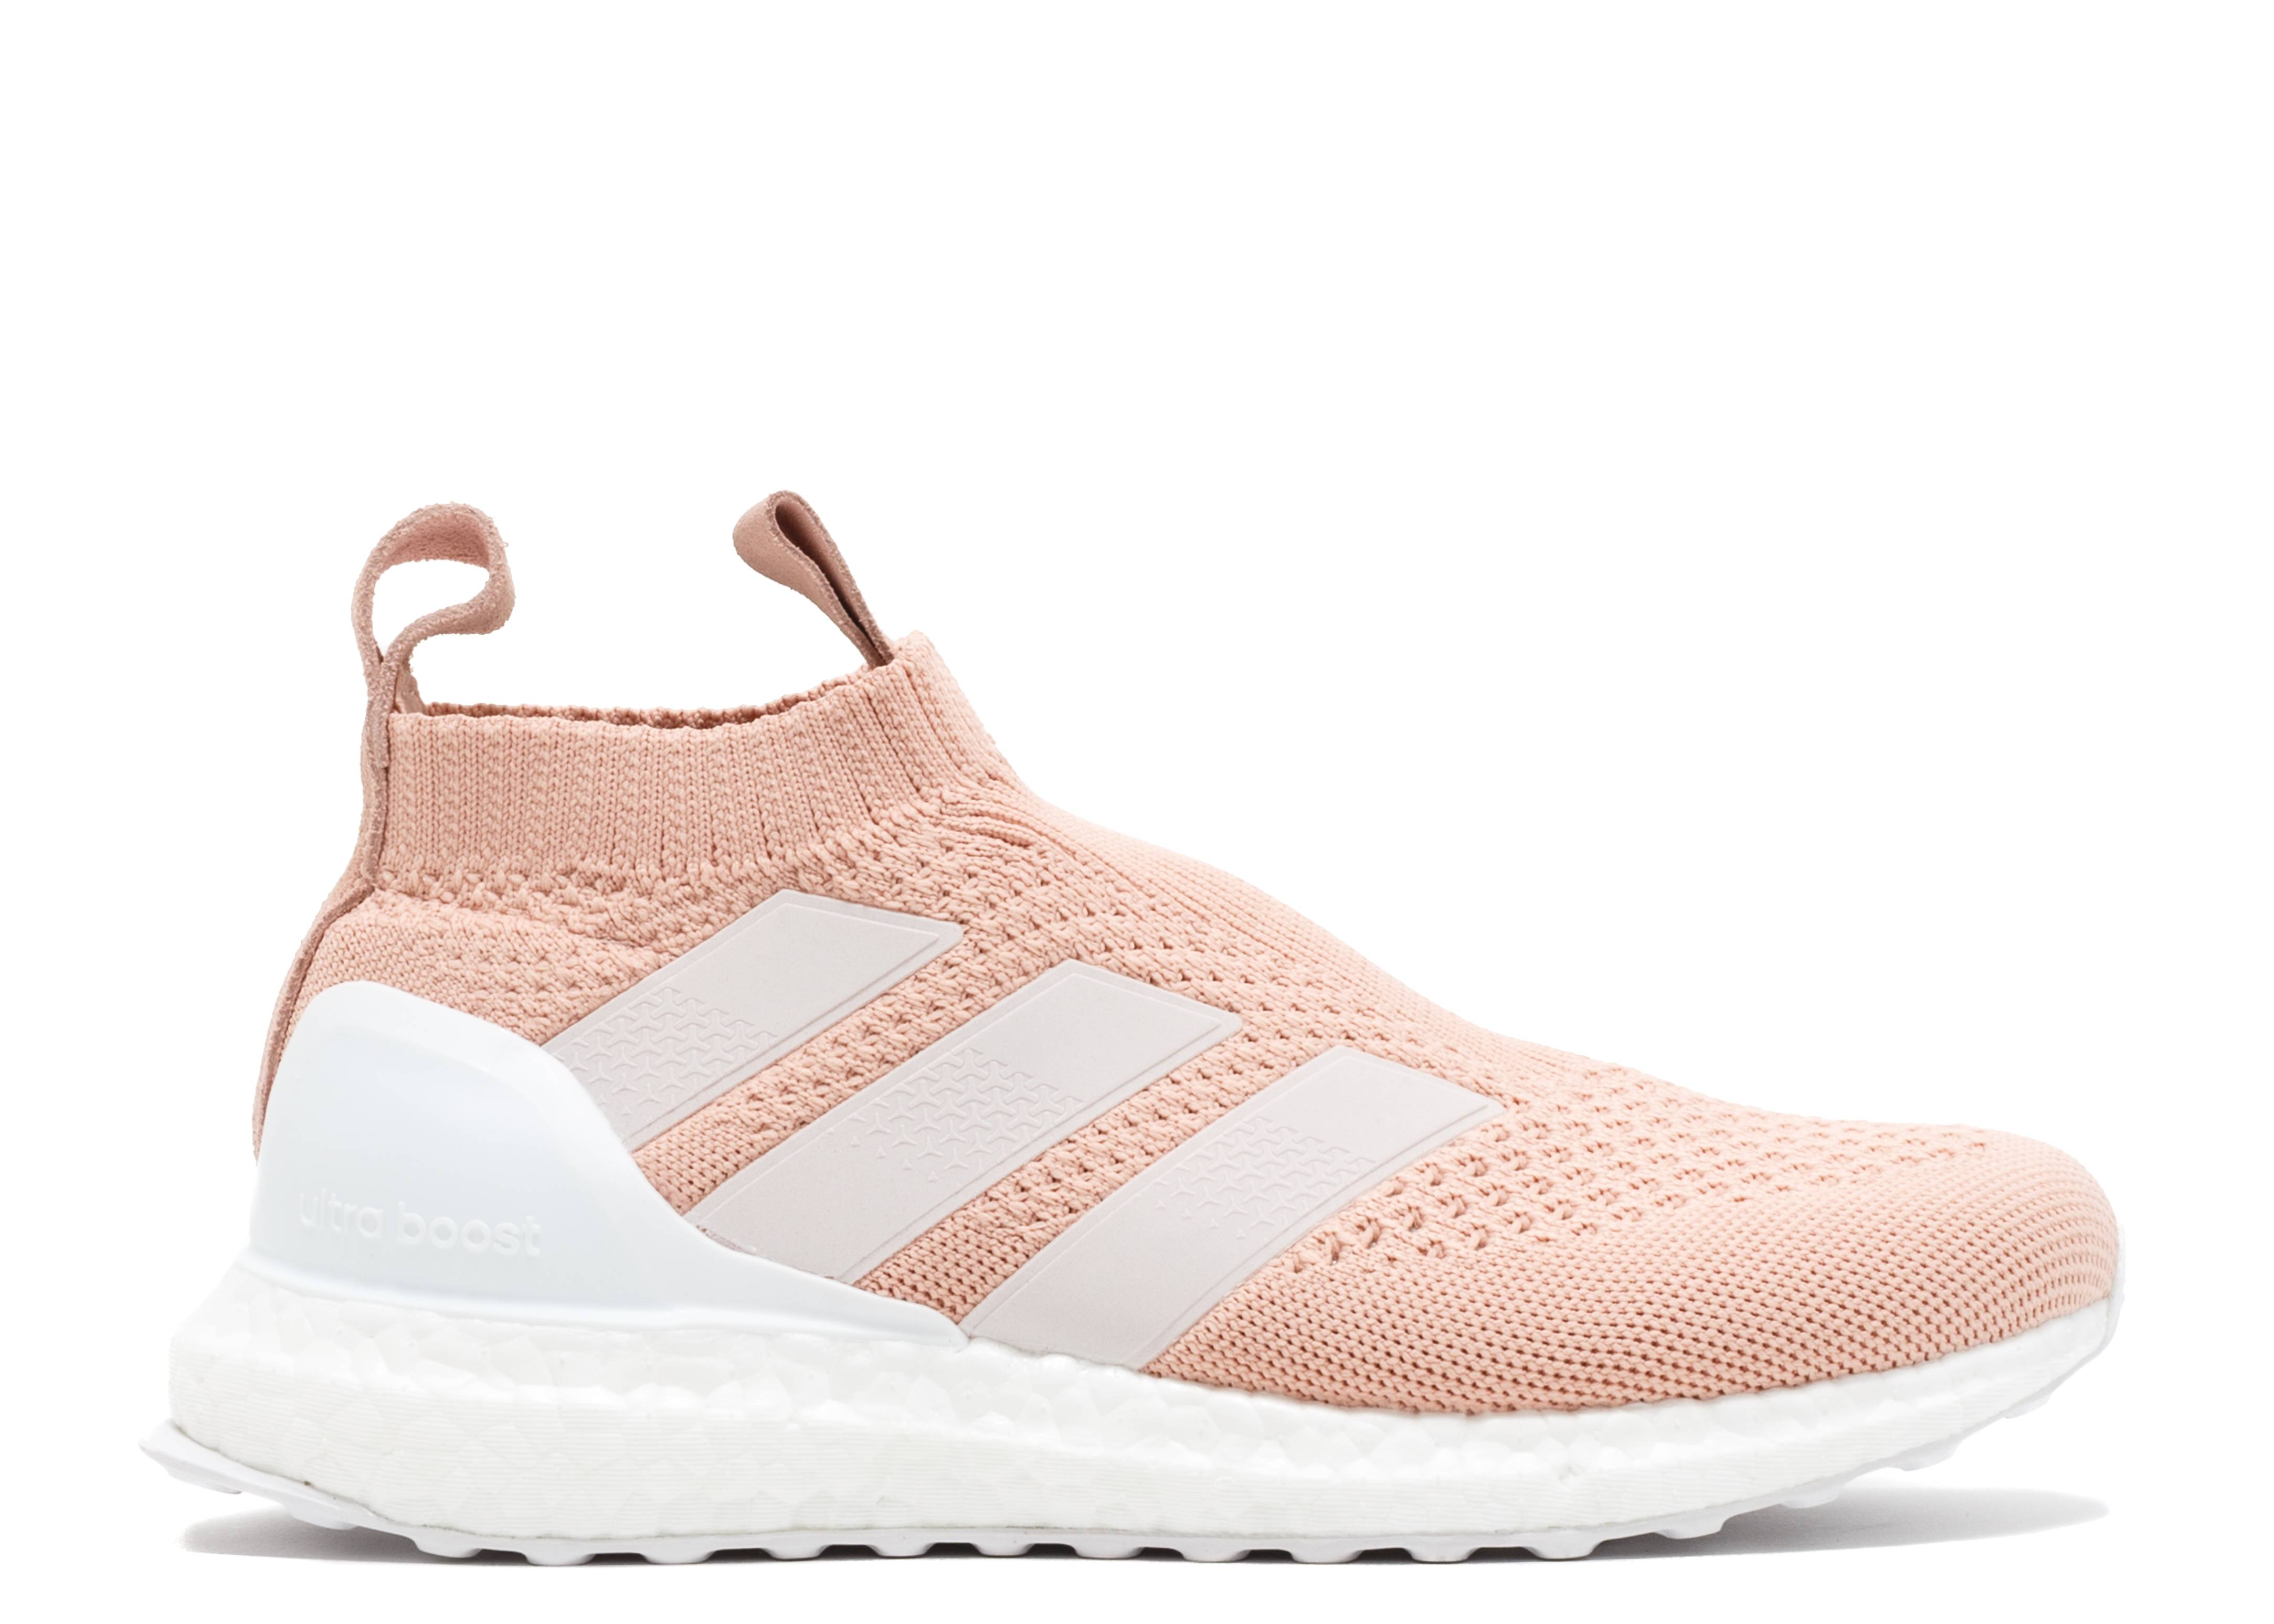 Adidas x Kith ACE 16 PureControl Ultra Boost Flamingos Pale